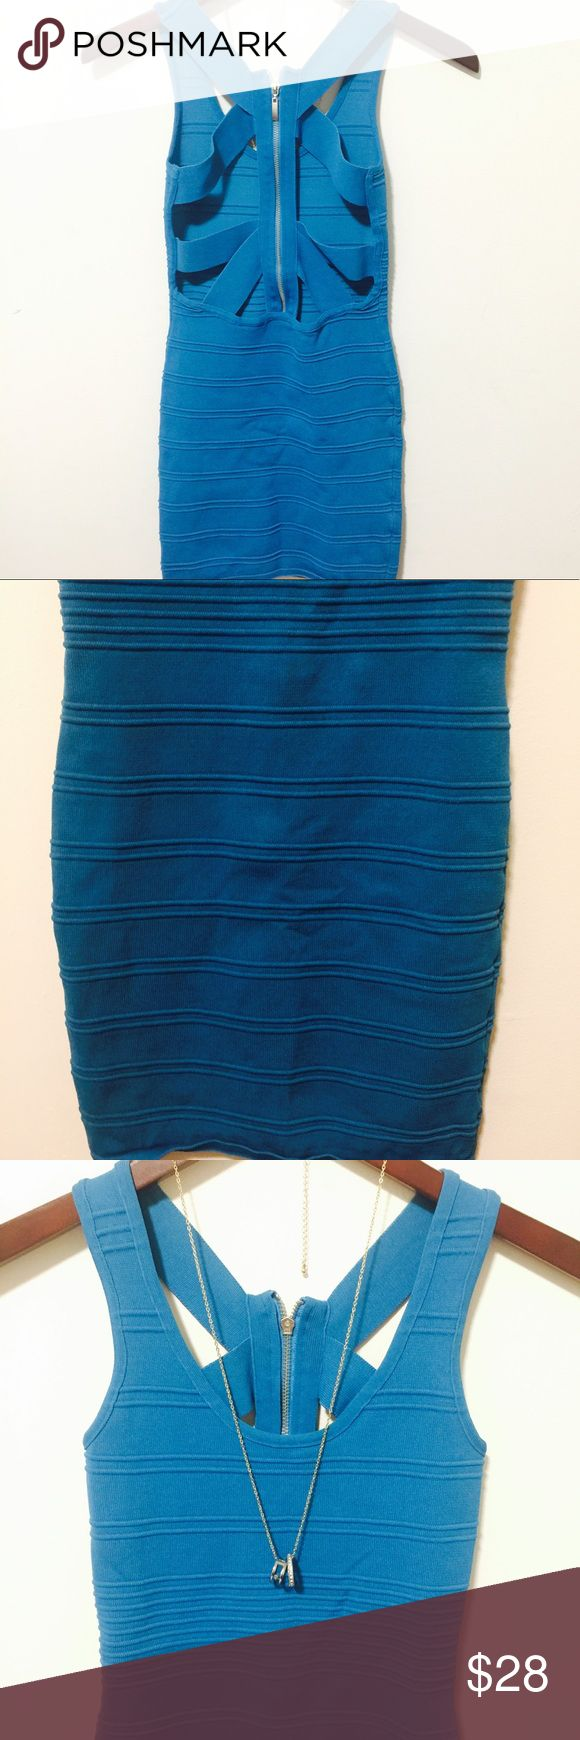 🆕TEAL CROSS BACK SEXY ZIPPER BANDAGE DRESS SM SUPER SEXY TIGHT CURVY BANDAGE CROSS BACK ZIPPER DRESS LAST ONE!!!!! HAVE SOLD ALL!!!! SIZE MED LEN 30 PIT TO PIT 13 PLEASE ASK ANY QUESTIONS ❤️❤️NEW INVENTORY❤️❤️  ✅BUNDLE AND SAVE ON SHIPPING 20% OFF ON ANY BUNDLES MY PRICES ARE GREAT AND THERE NWT OR NWOT UNLESS STATED  THERE NAME BRAND SELLING THEM FOR CHEAP✅  ***DONT FORGET TO FOLLOW I DELETE AND RELIST***  # GREAT DEALS Metropark Dresses Mini